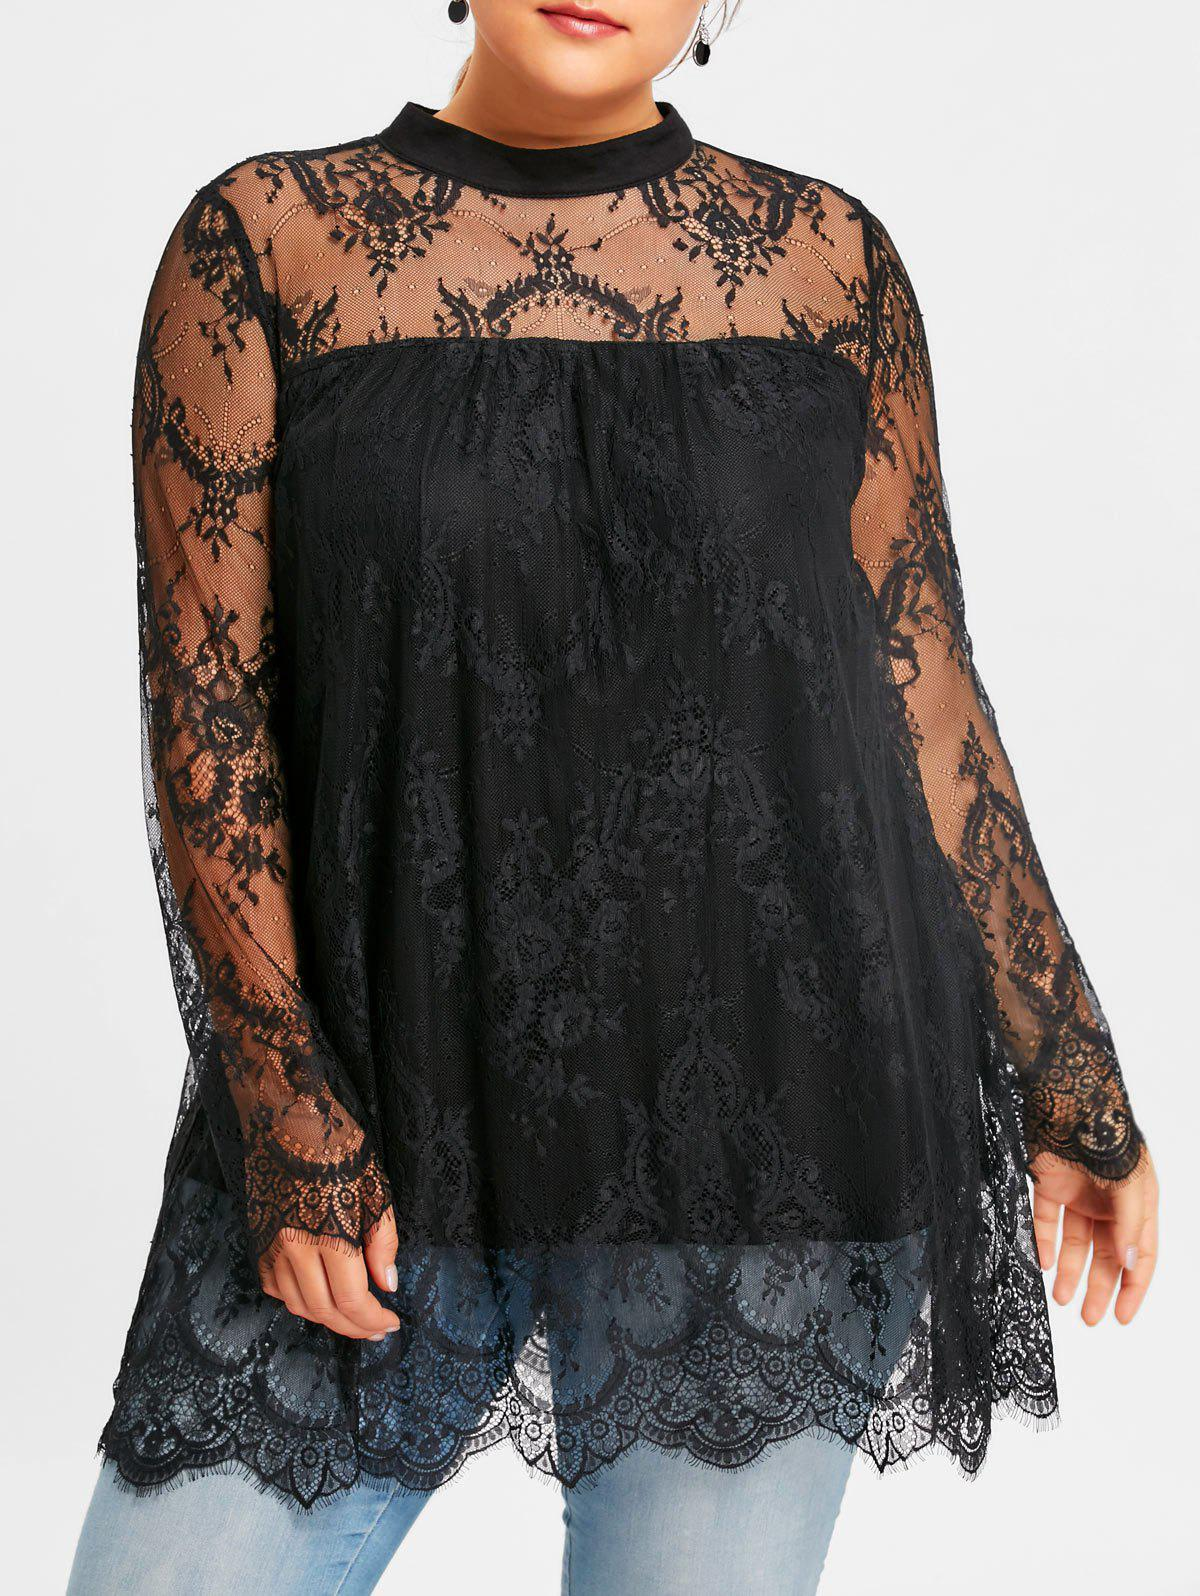 Plus Size Sheer Lace Scalloped Edge BlouseWOMEN<br><br>Size: 2XL; Color: BLACK; Material: Nylon,Spandex; Shirt Length: Long; Sleeve Length: Full; Collar: Mock Neck; Style: Fashion; Season: Fall,Spring; Embellishment: Lace; Pattern Type: Floral; Weight: 0.3000kg; Package Contents: 1 x Blouse;